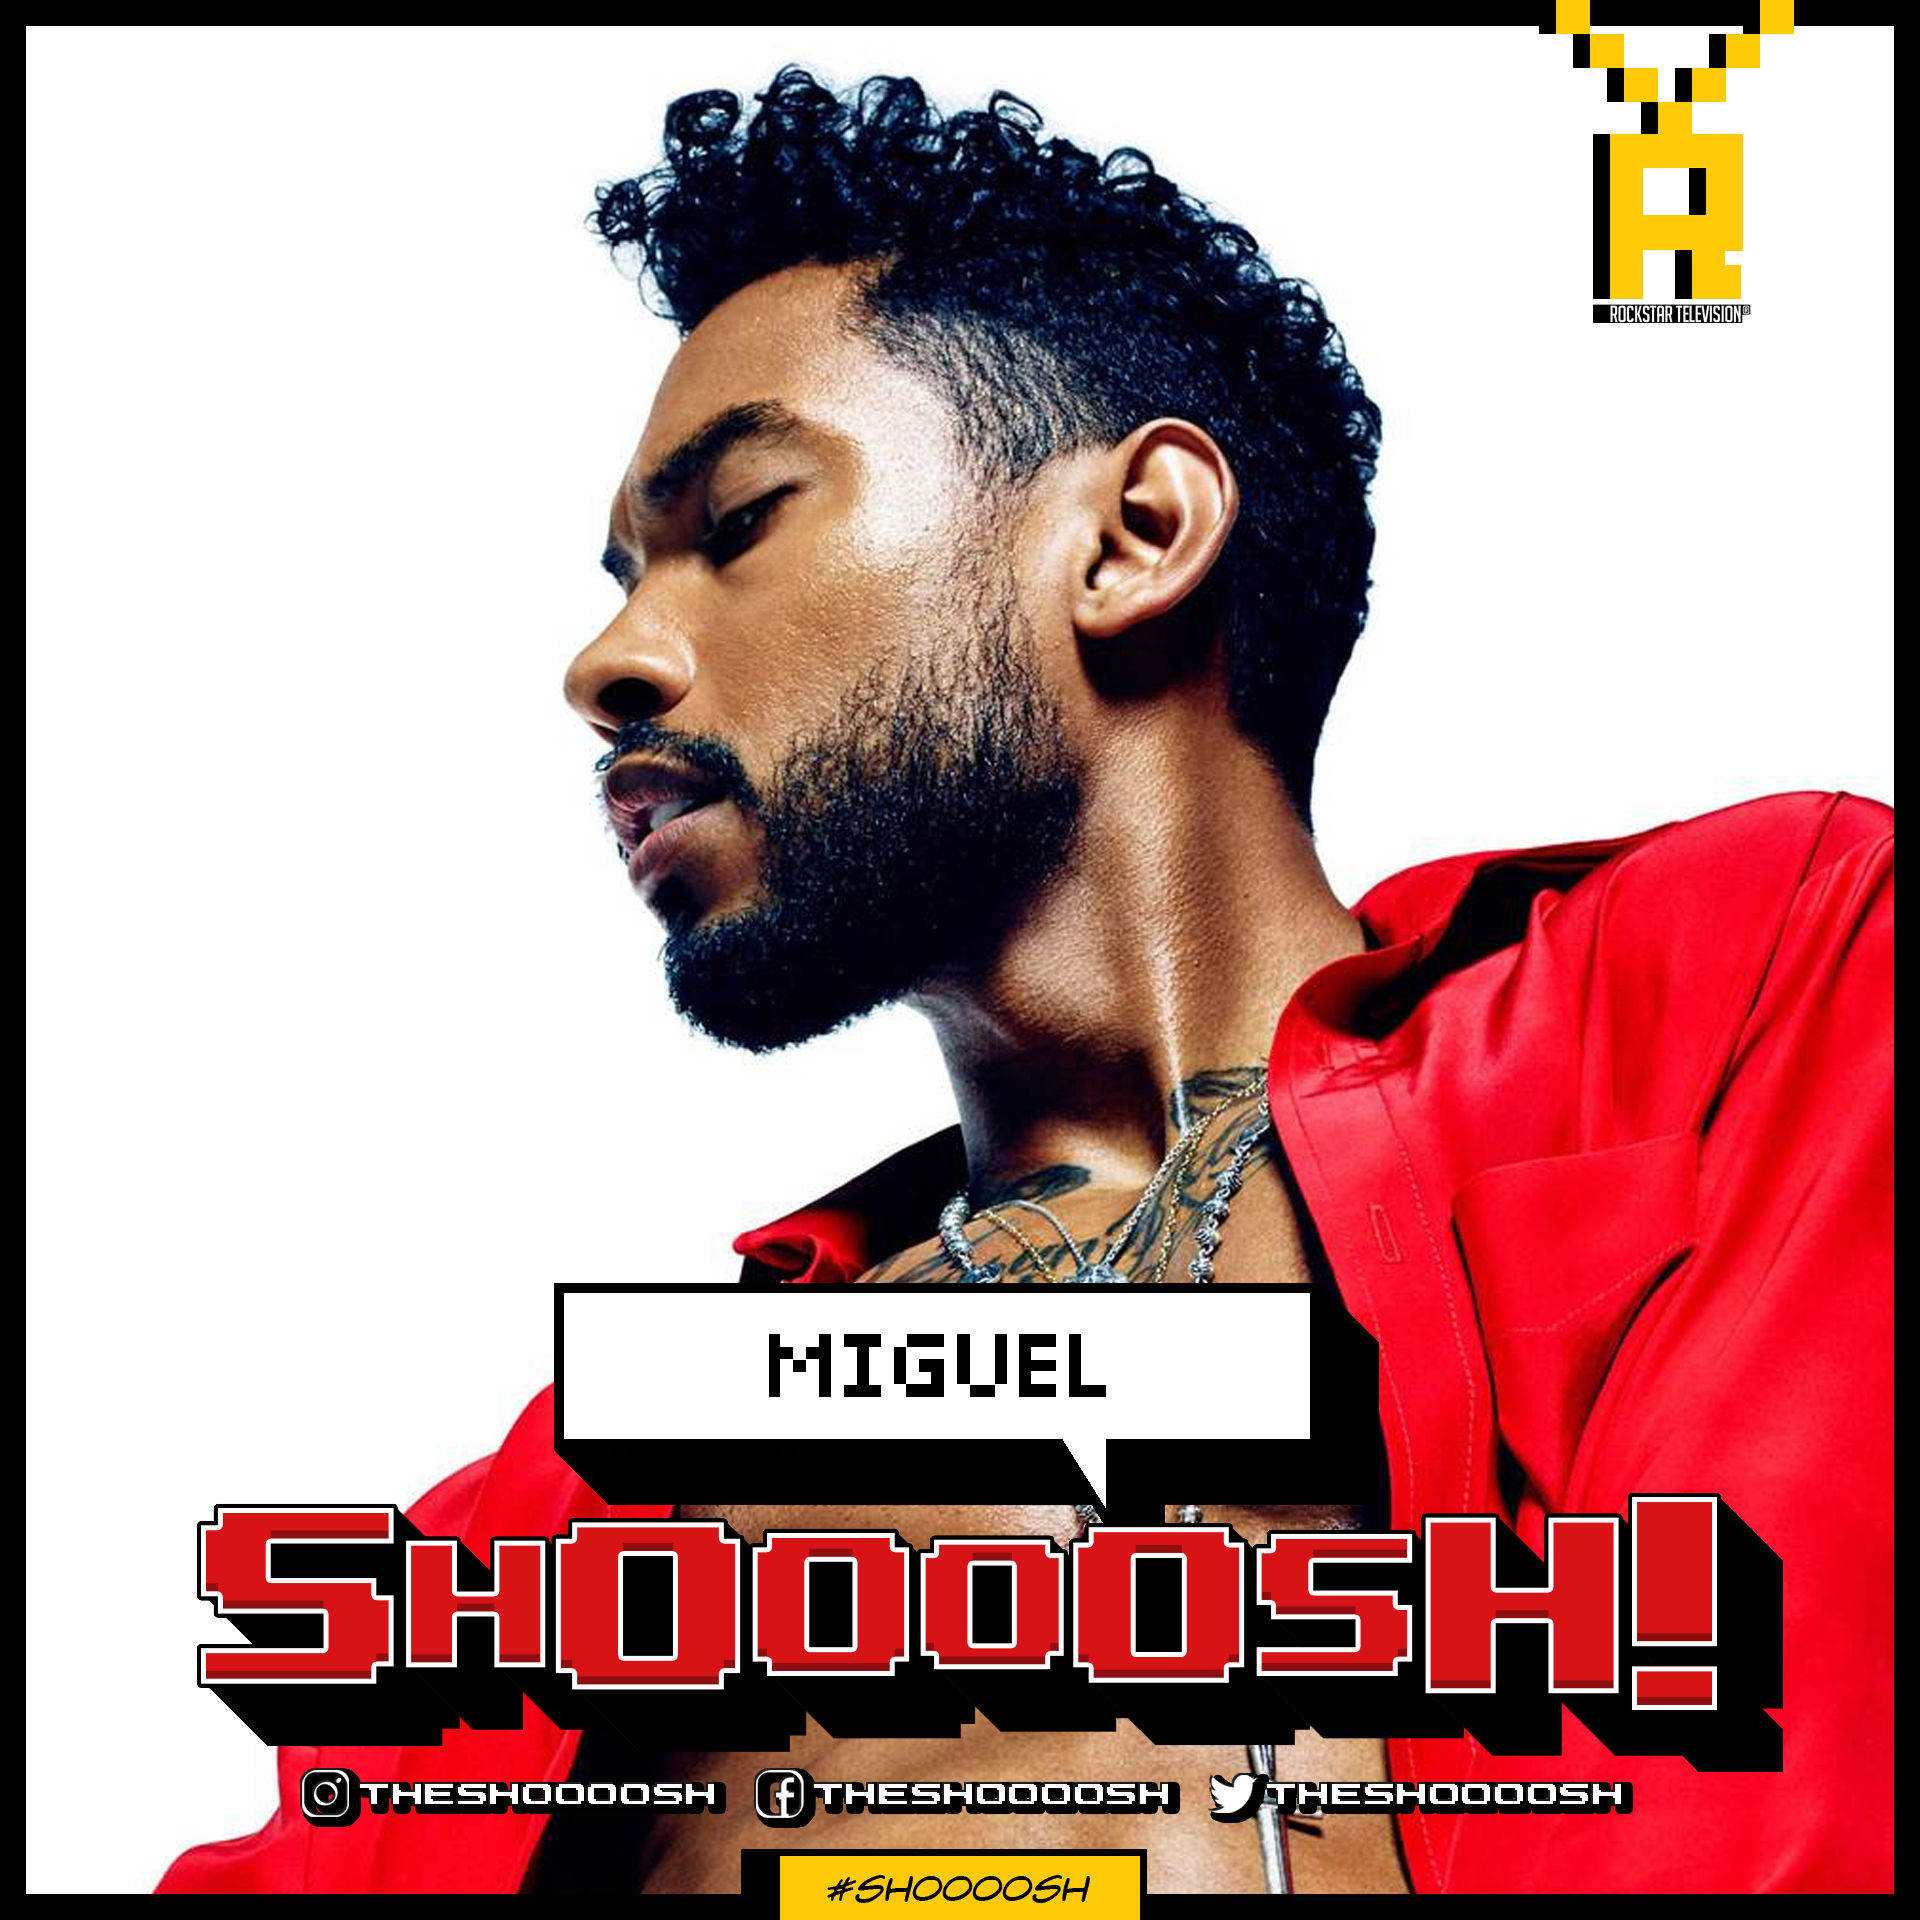 SHOOOOSH! MIGUEL00001